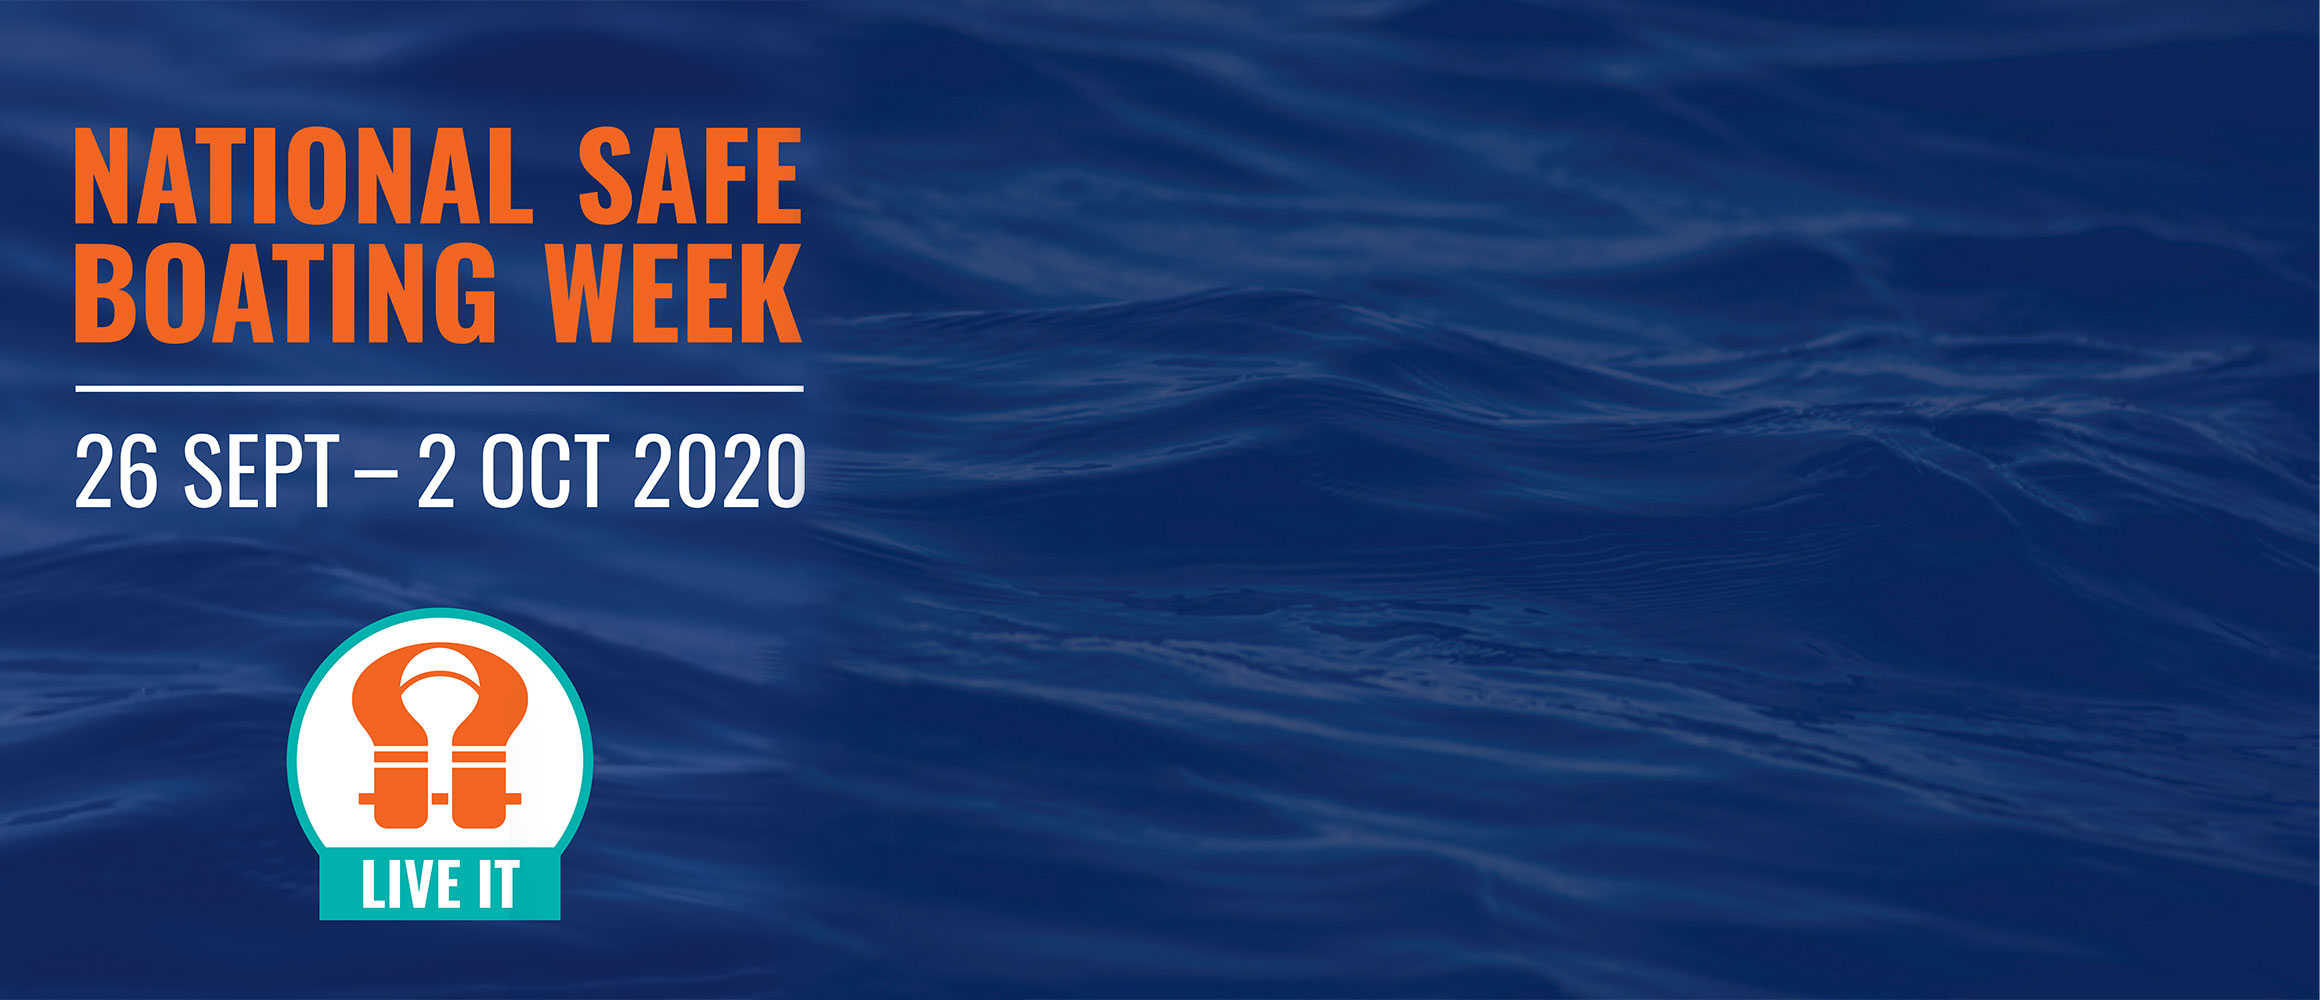 National Safe Boating Week logo and water background